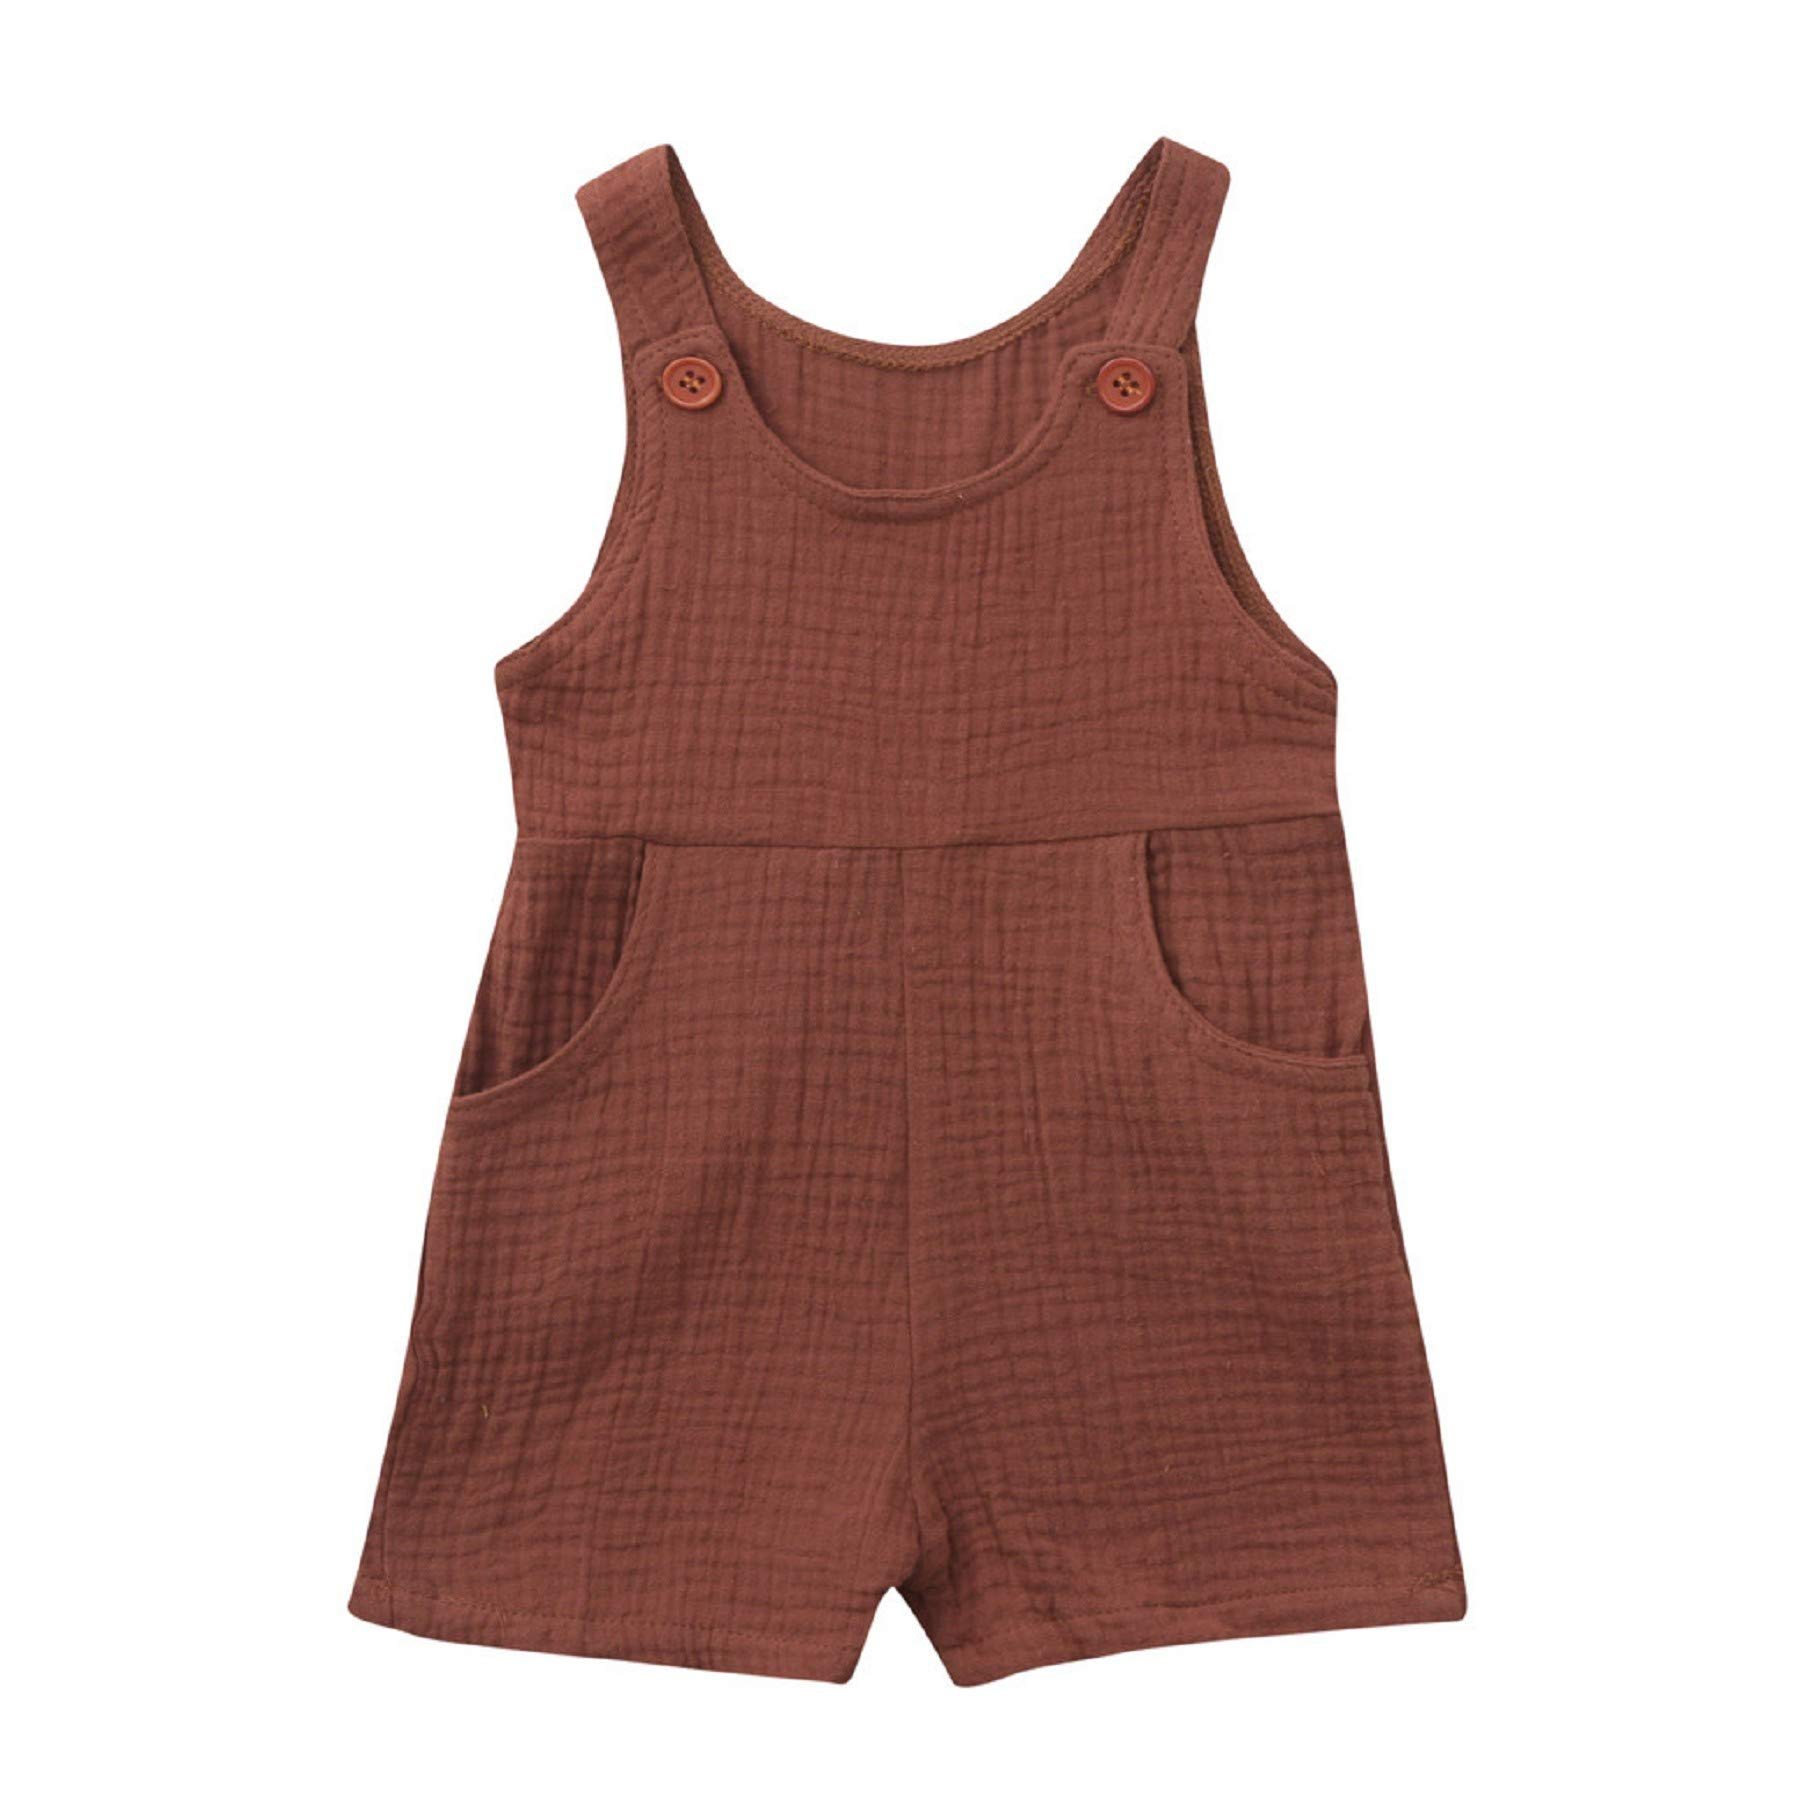 Summer Newborn Baby Boys Girls Cotton Blend Solid Overalls Romper Jumpsuit Clothes